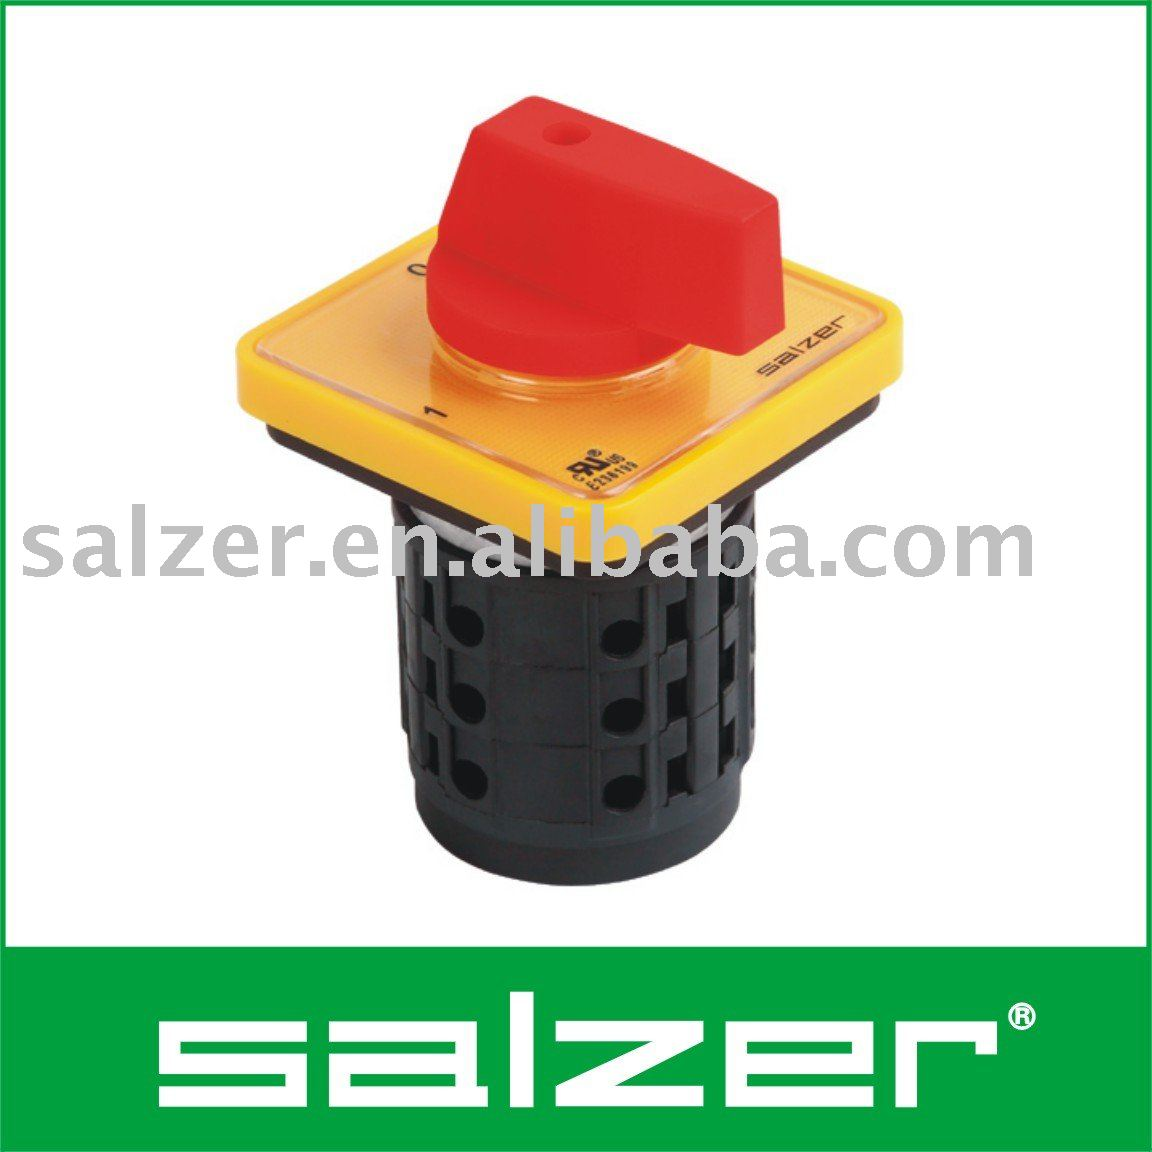 hight resolution of salzer ac selector switch a o m ul file no e236199 tuv and ce approved